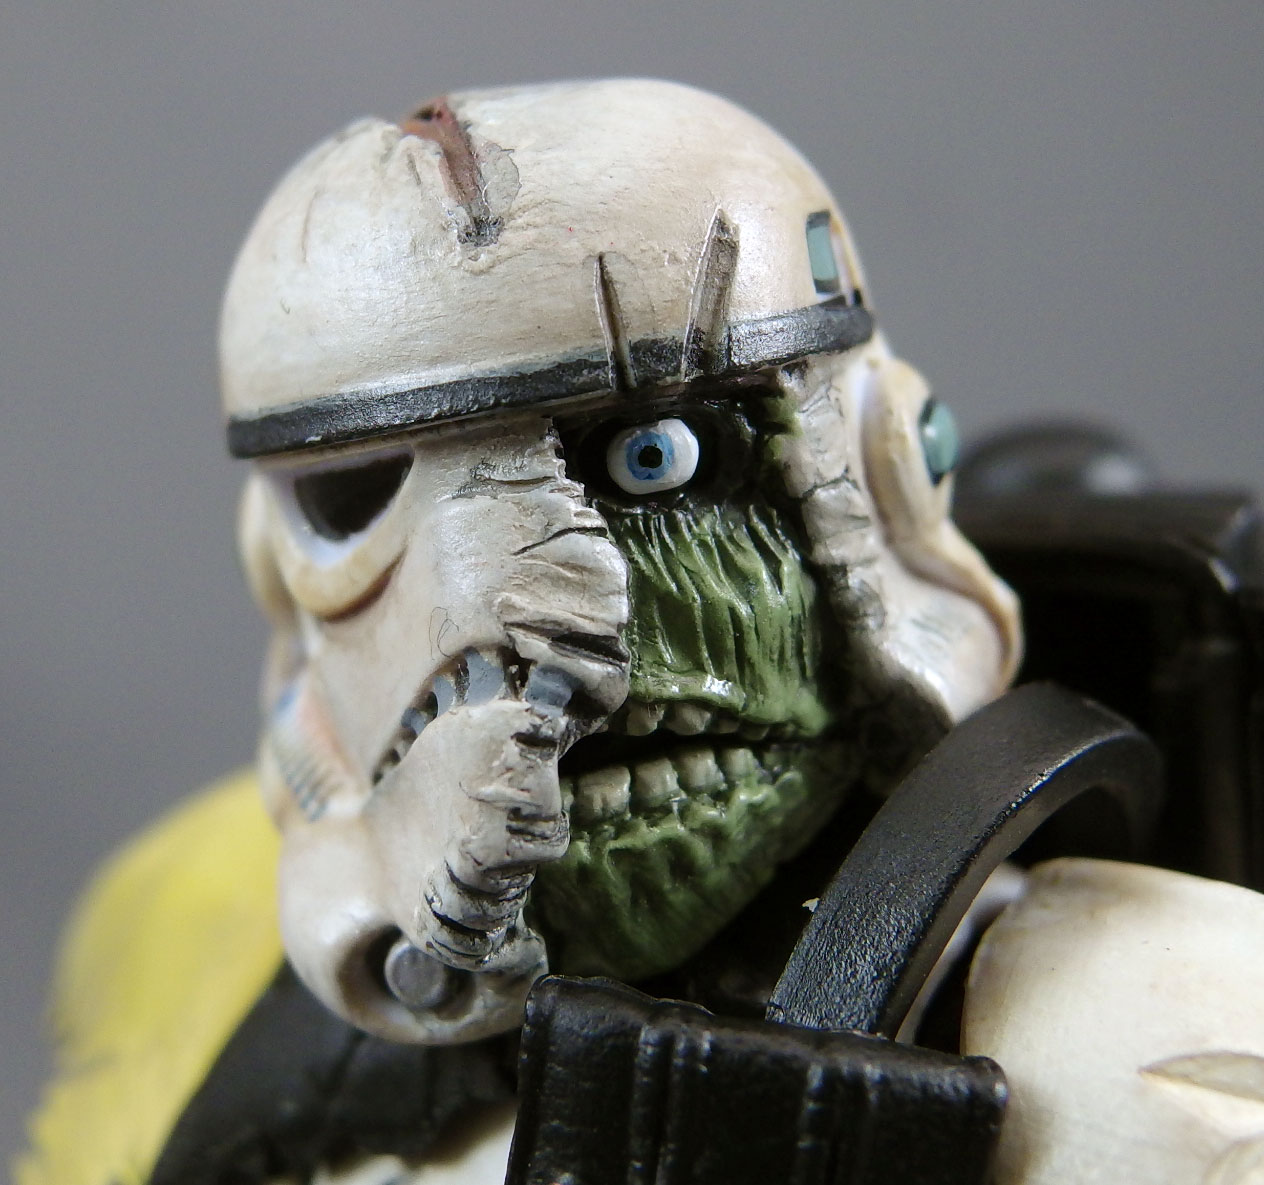 Attack of the Death Trooper (Star Wars Black Zombie Sandtrooper Custom by Joe Amaro)